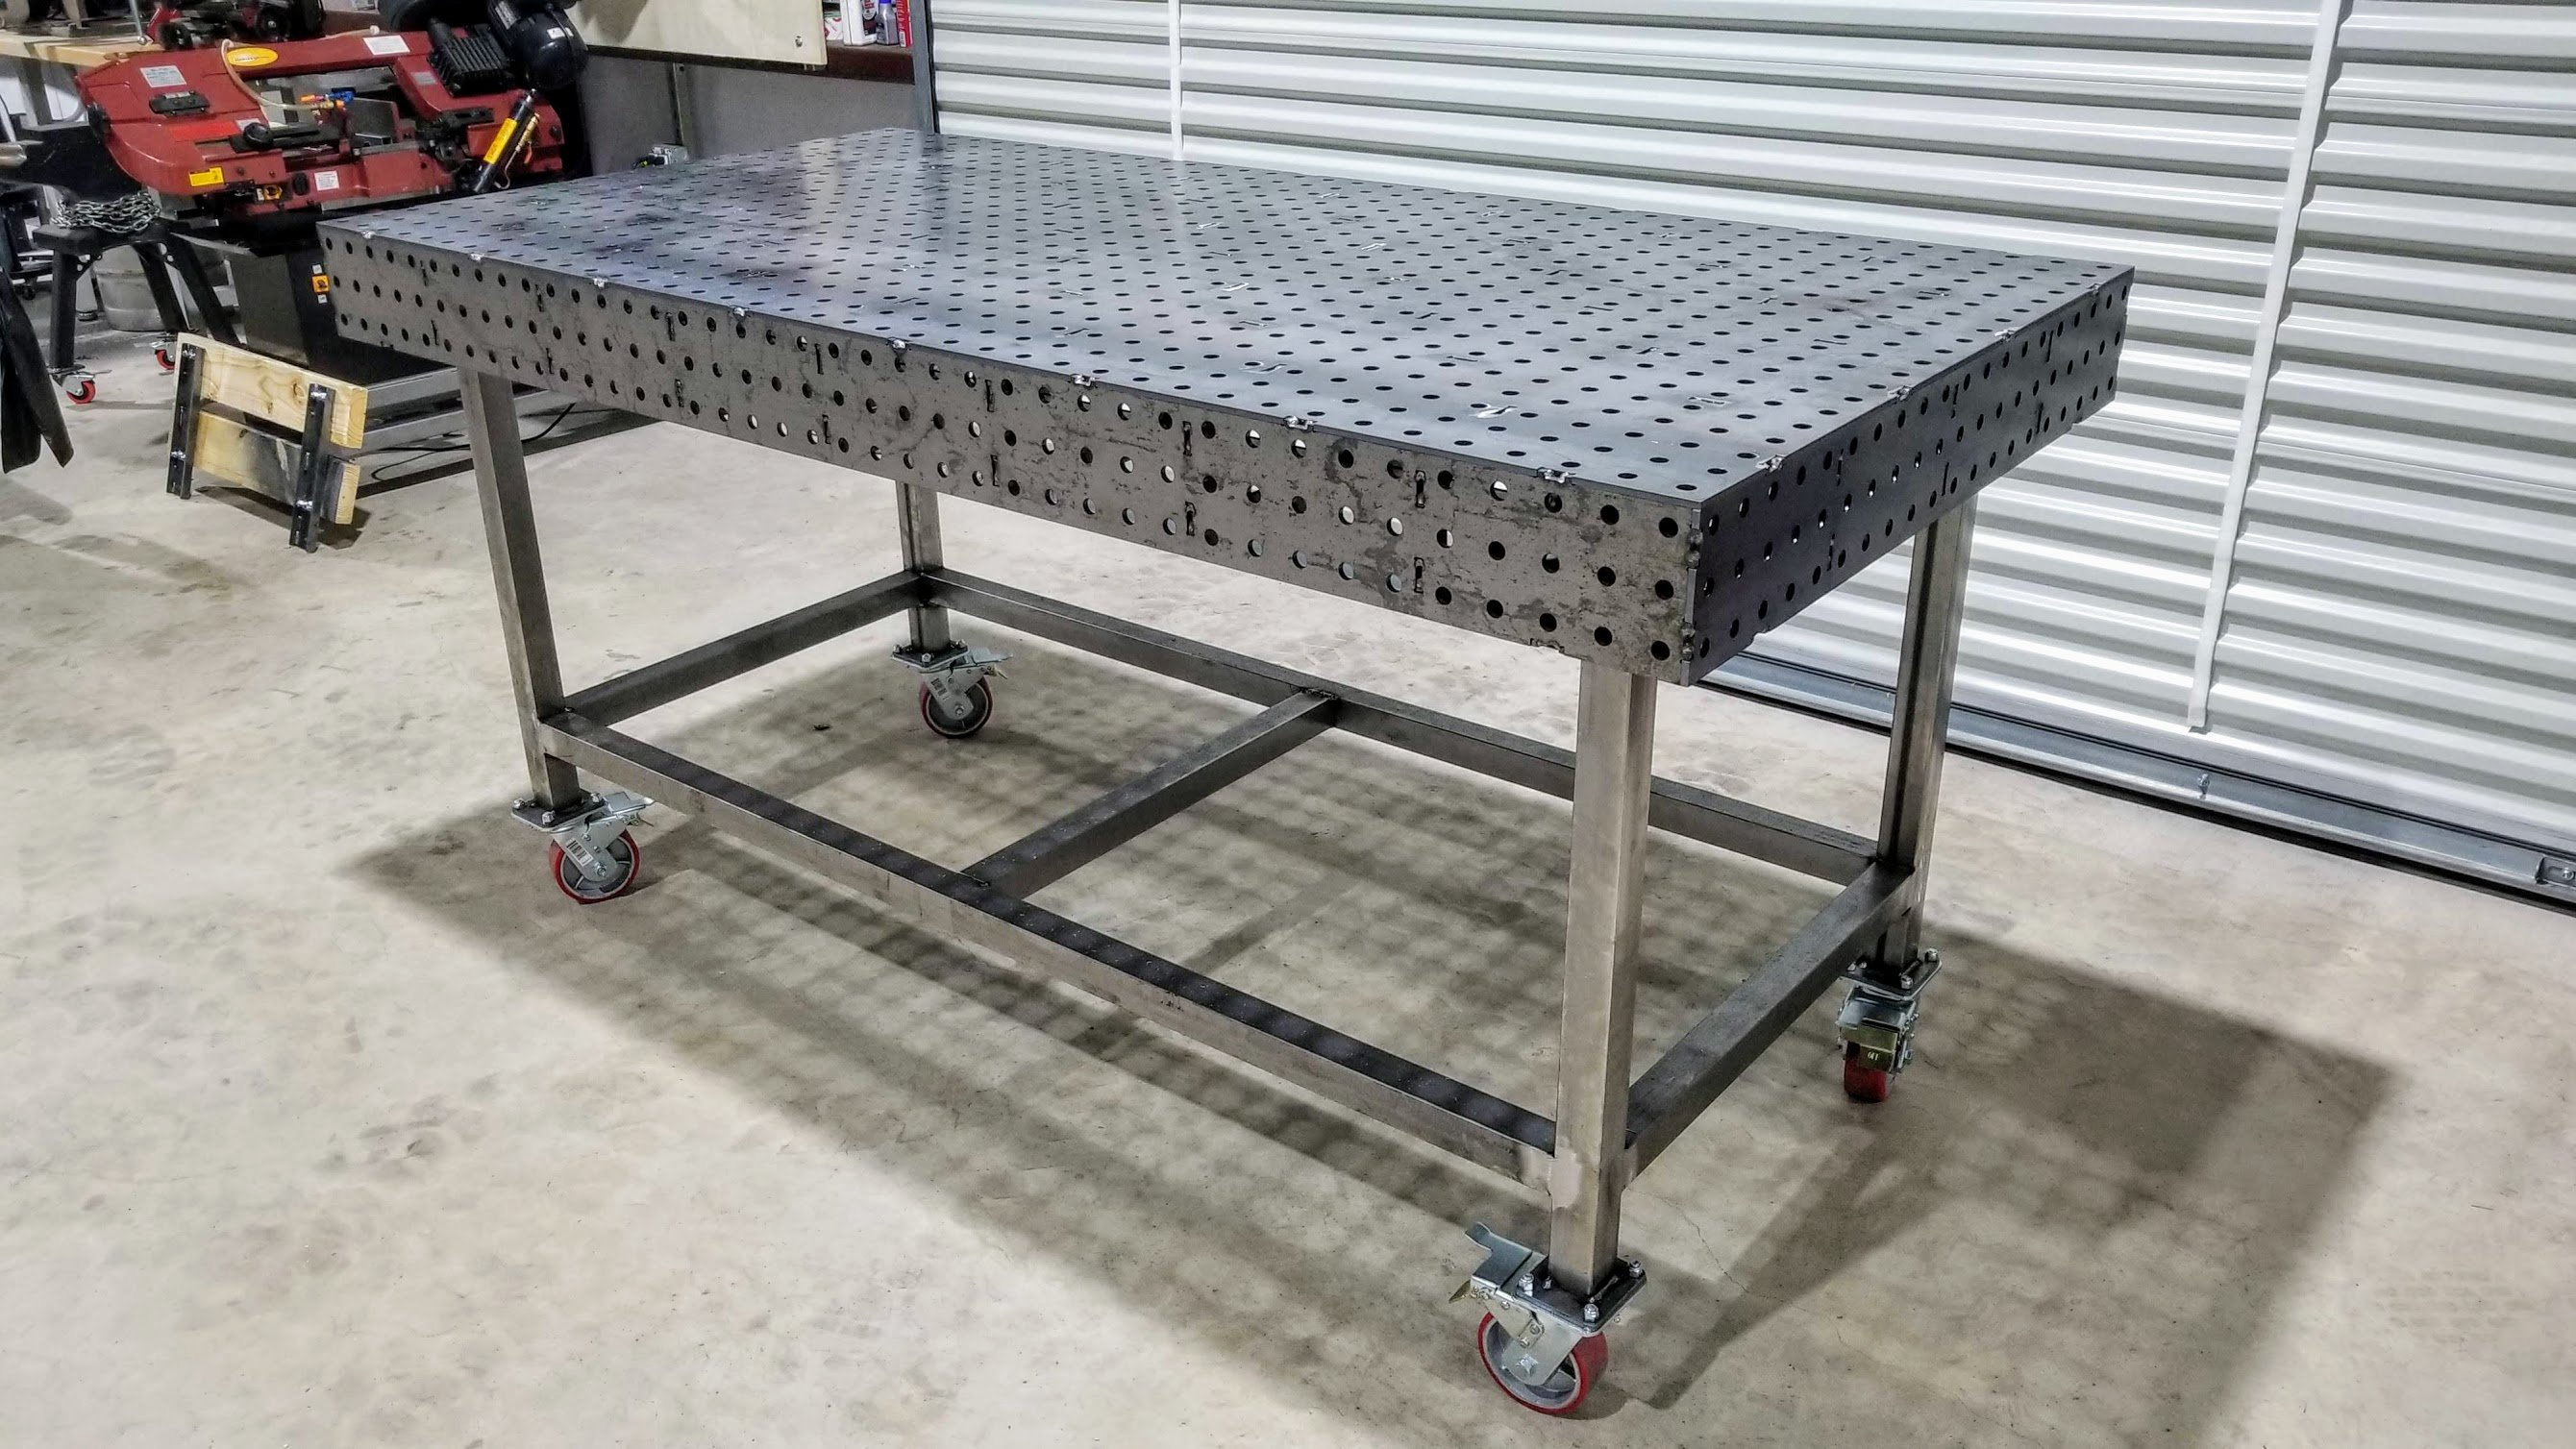 Fantastic Welding Table 40 X 80 Fully Fabricated Weld Tables Download Free Architecture Designs Embacsunscenecom